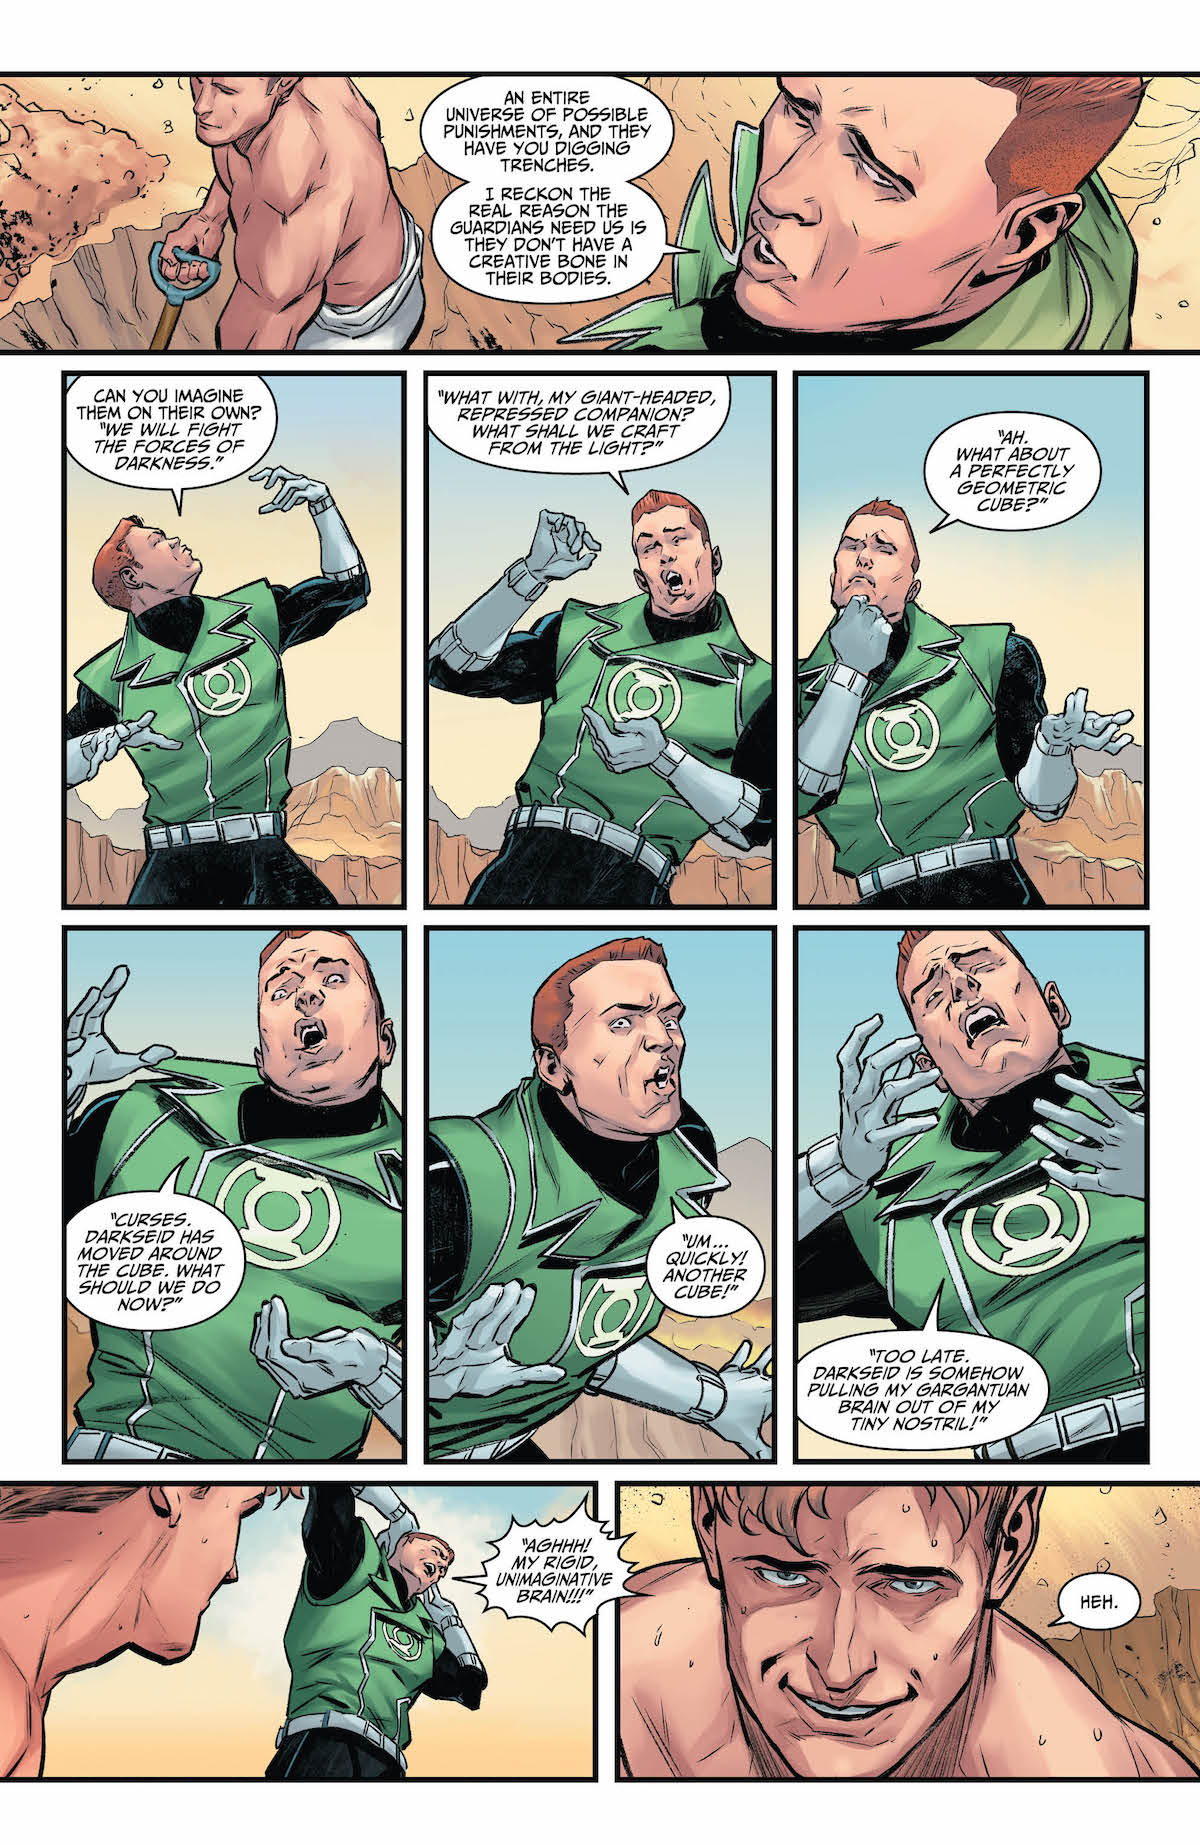 Injustice 2 #27 page 4